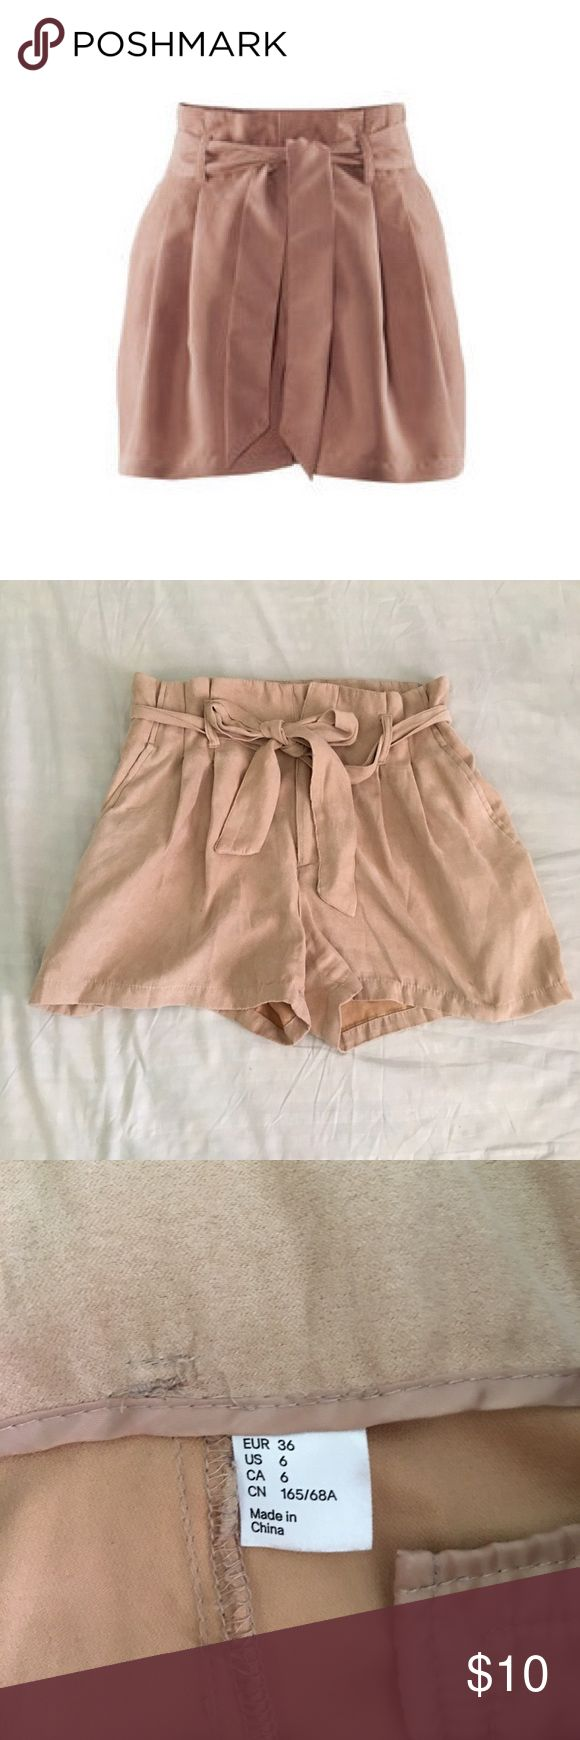 H&M High Waited Nude Shorts Material feels like suede or velvet. It's a cream beige color. Give your wardrobe a neutral flare. Feel free to comment :) H&M Shorts